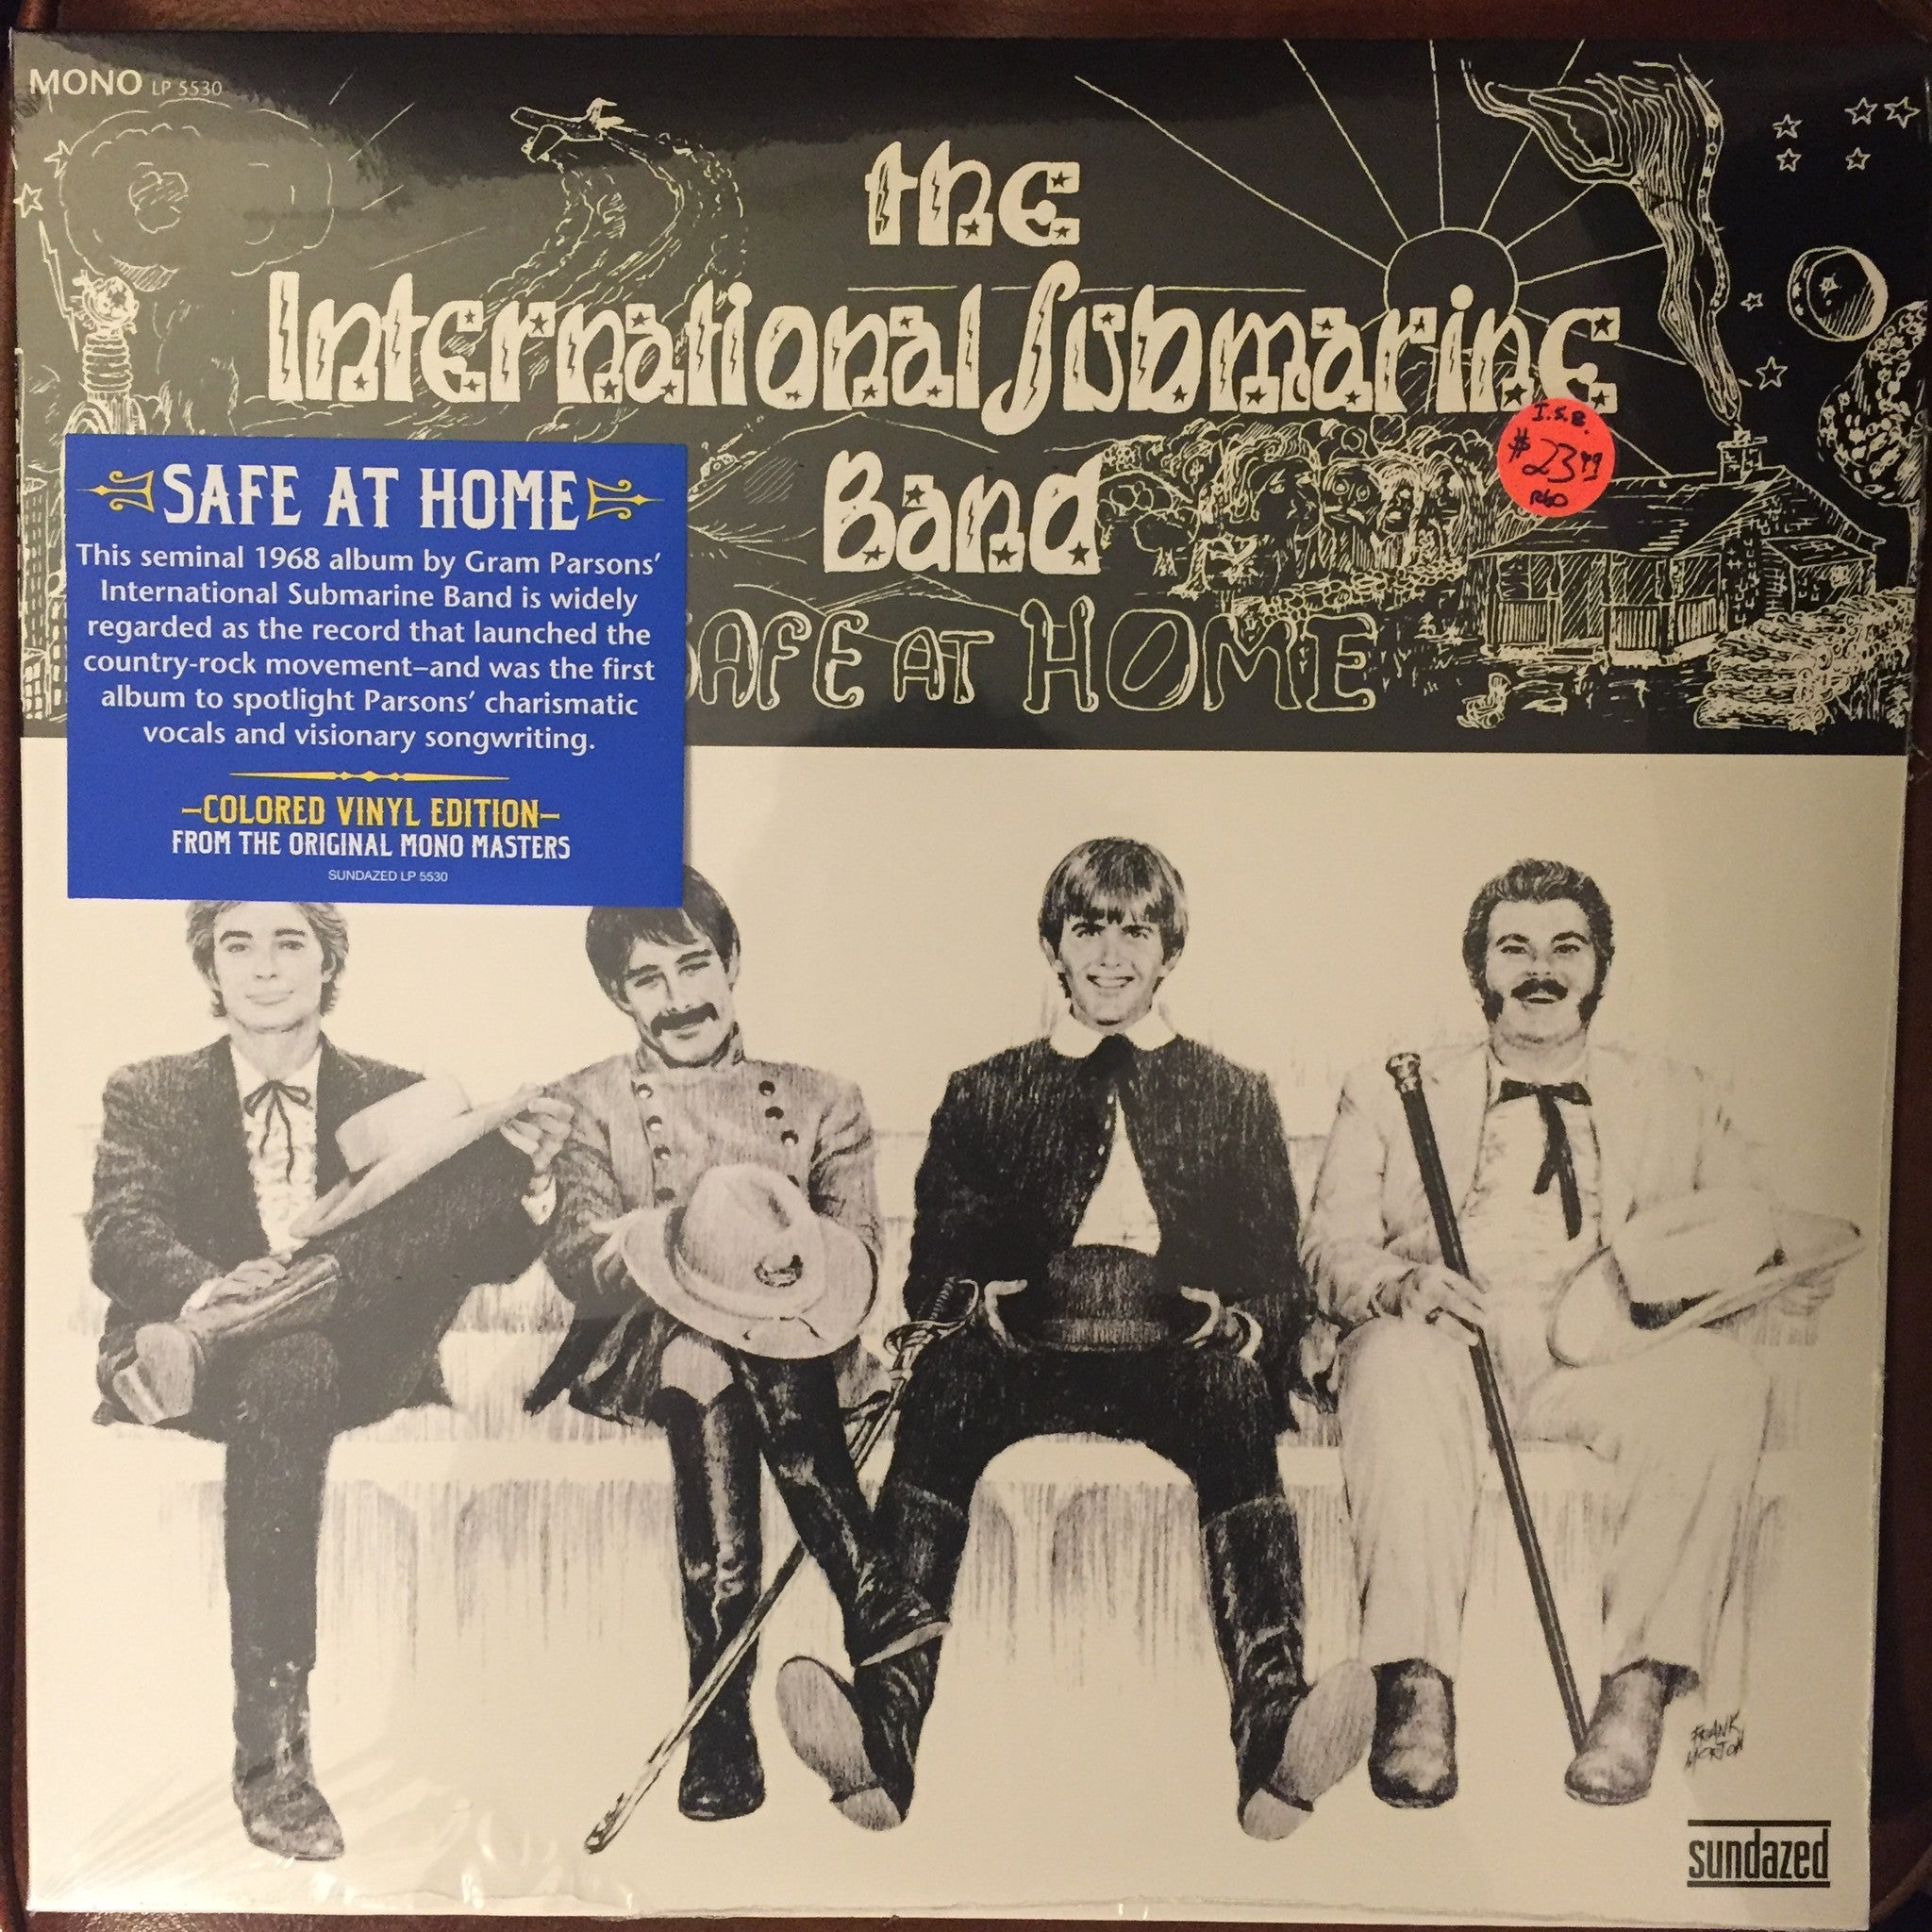 International Submarine Band - Safe At Home LP